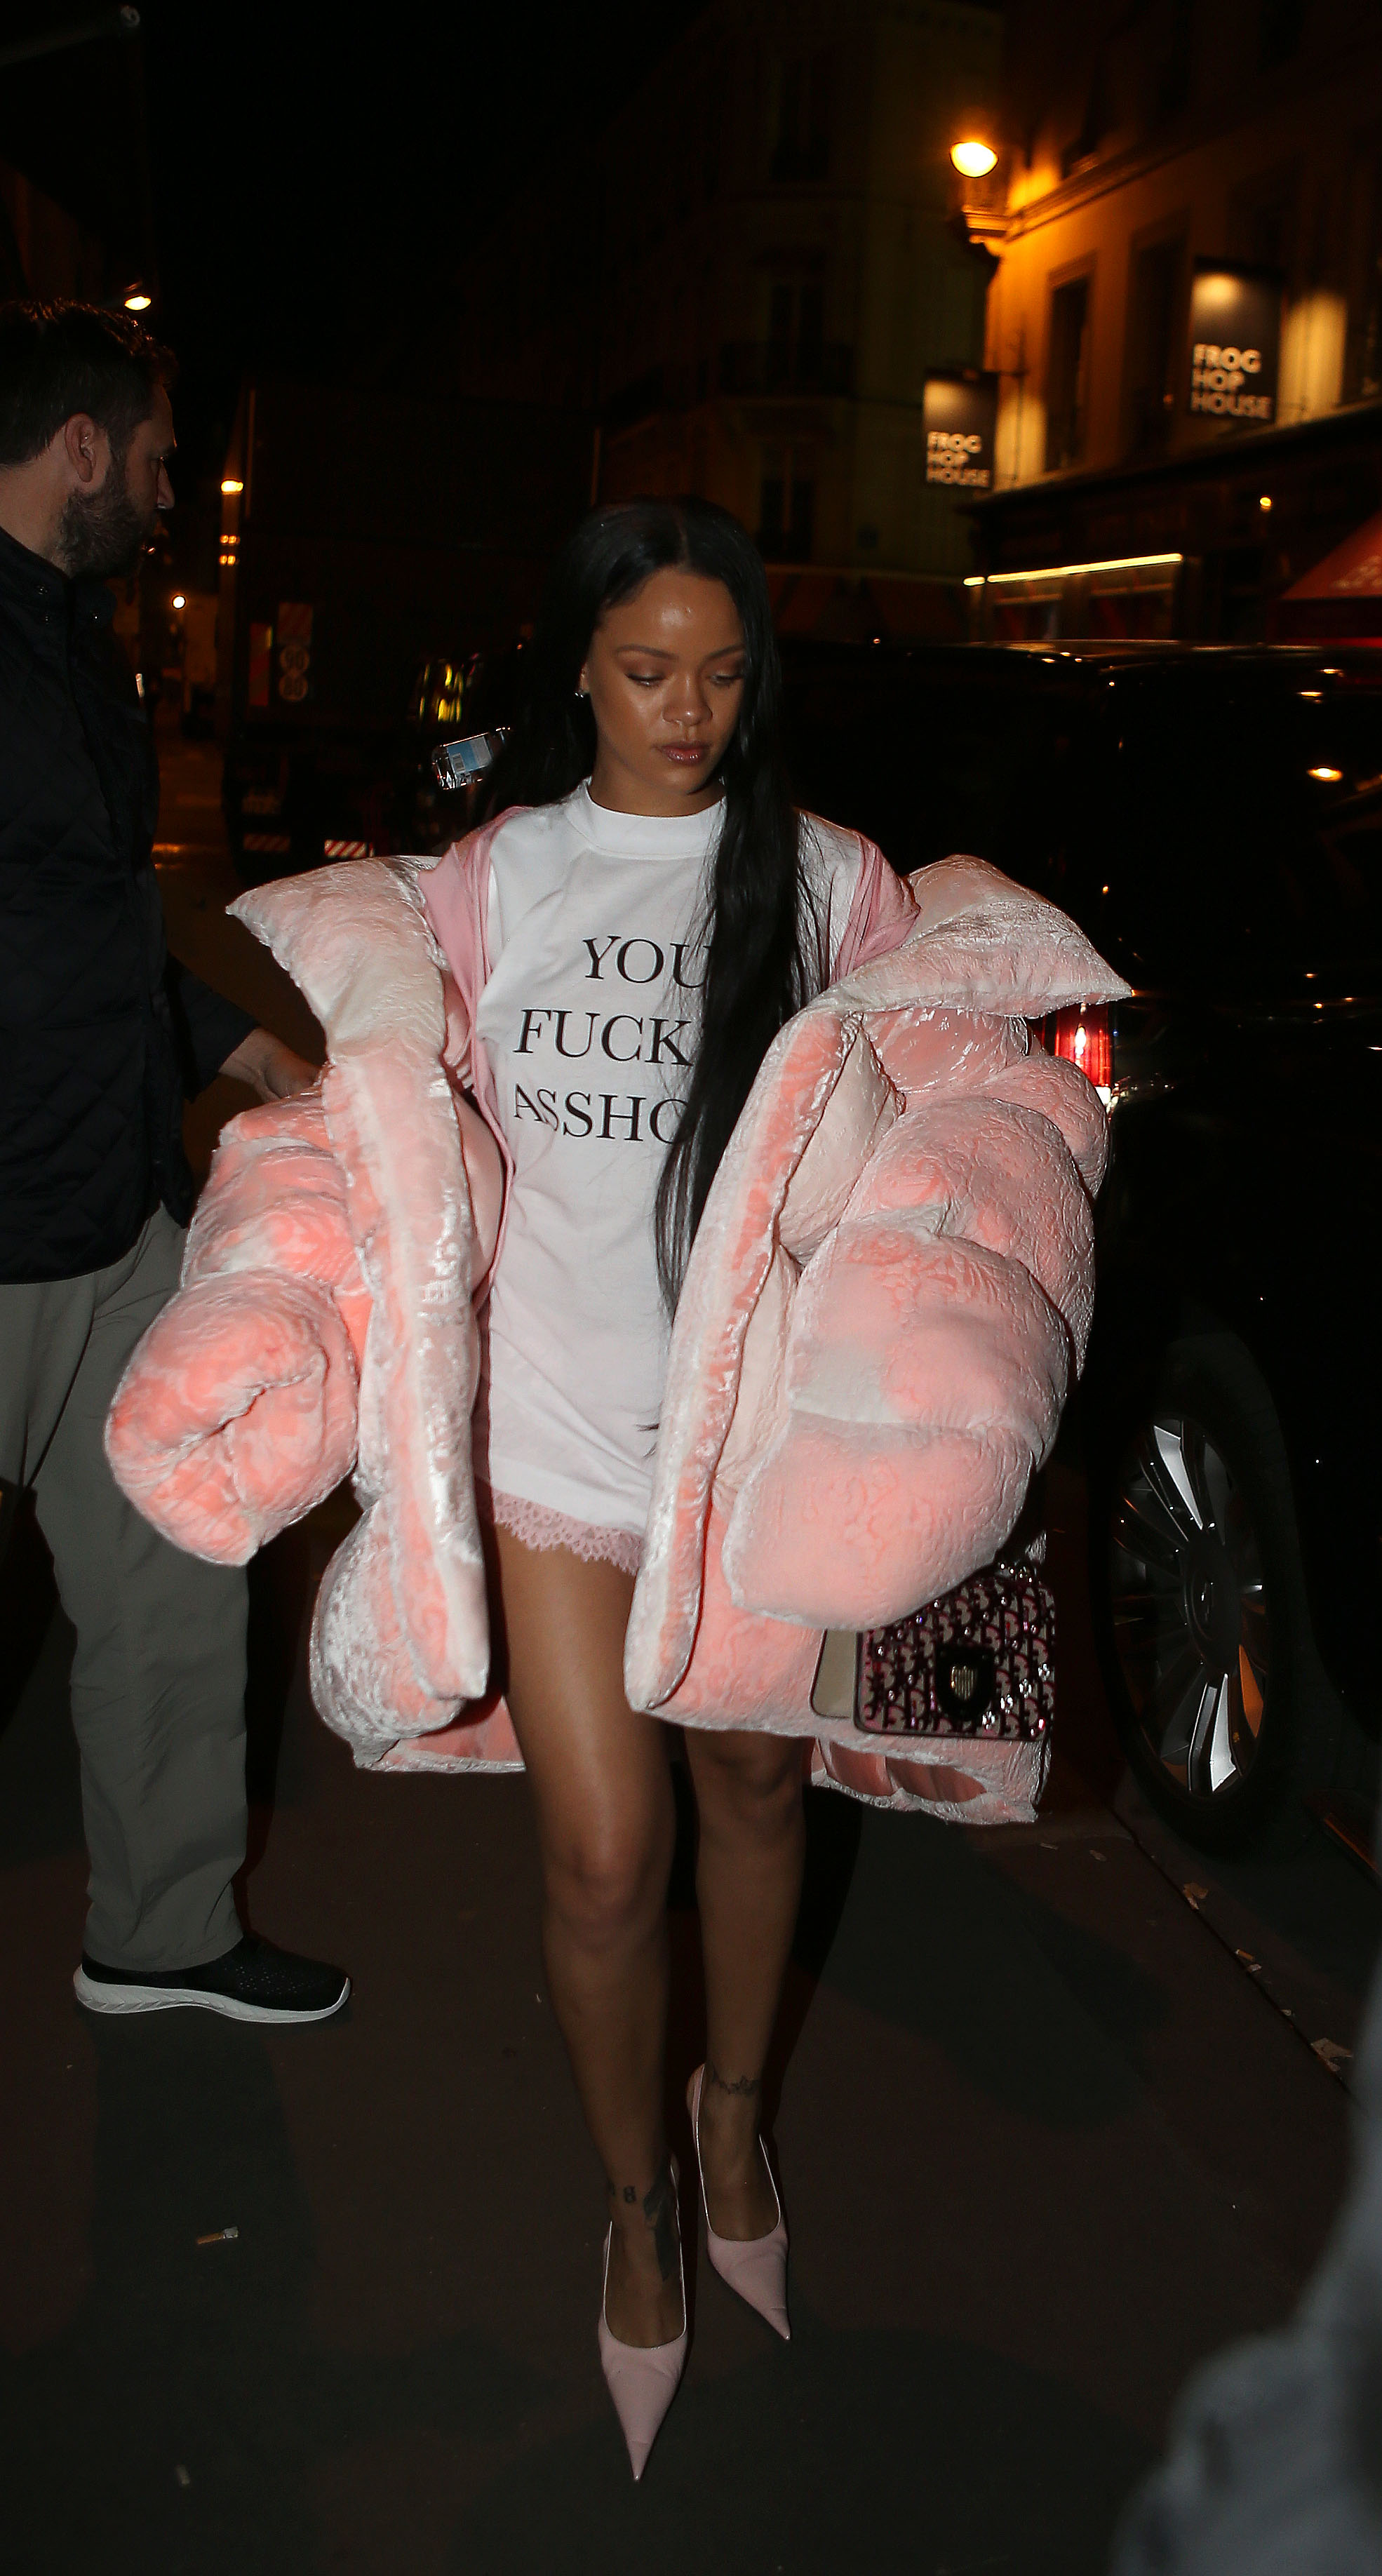 EXCLUSIF: Rihanna arrive au studio pour un shopping le 1 Octobre 2016 EXCLUSIVE: Rihanna went to studio for Puma Shooting advertising. After shooting she went to Marc Jacobs private appartment in Paris for a party., Image: 301667430, License: Rights-managed, Restrictions: , Model Release: no, Credit line: Profimedia, KCS Presse